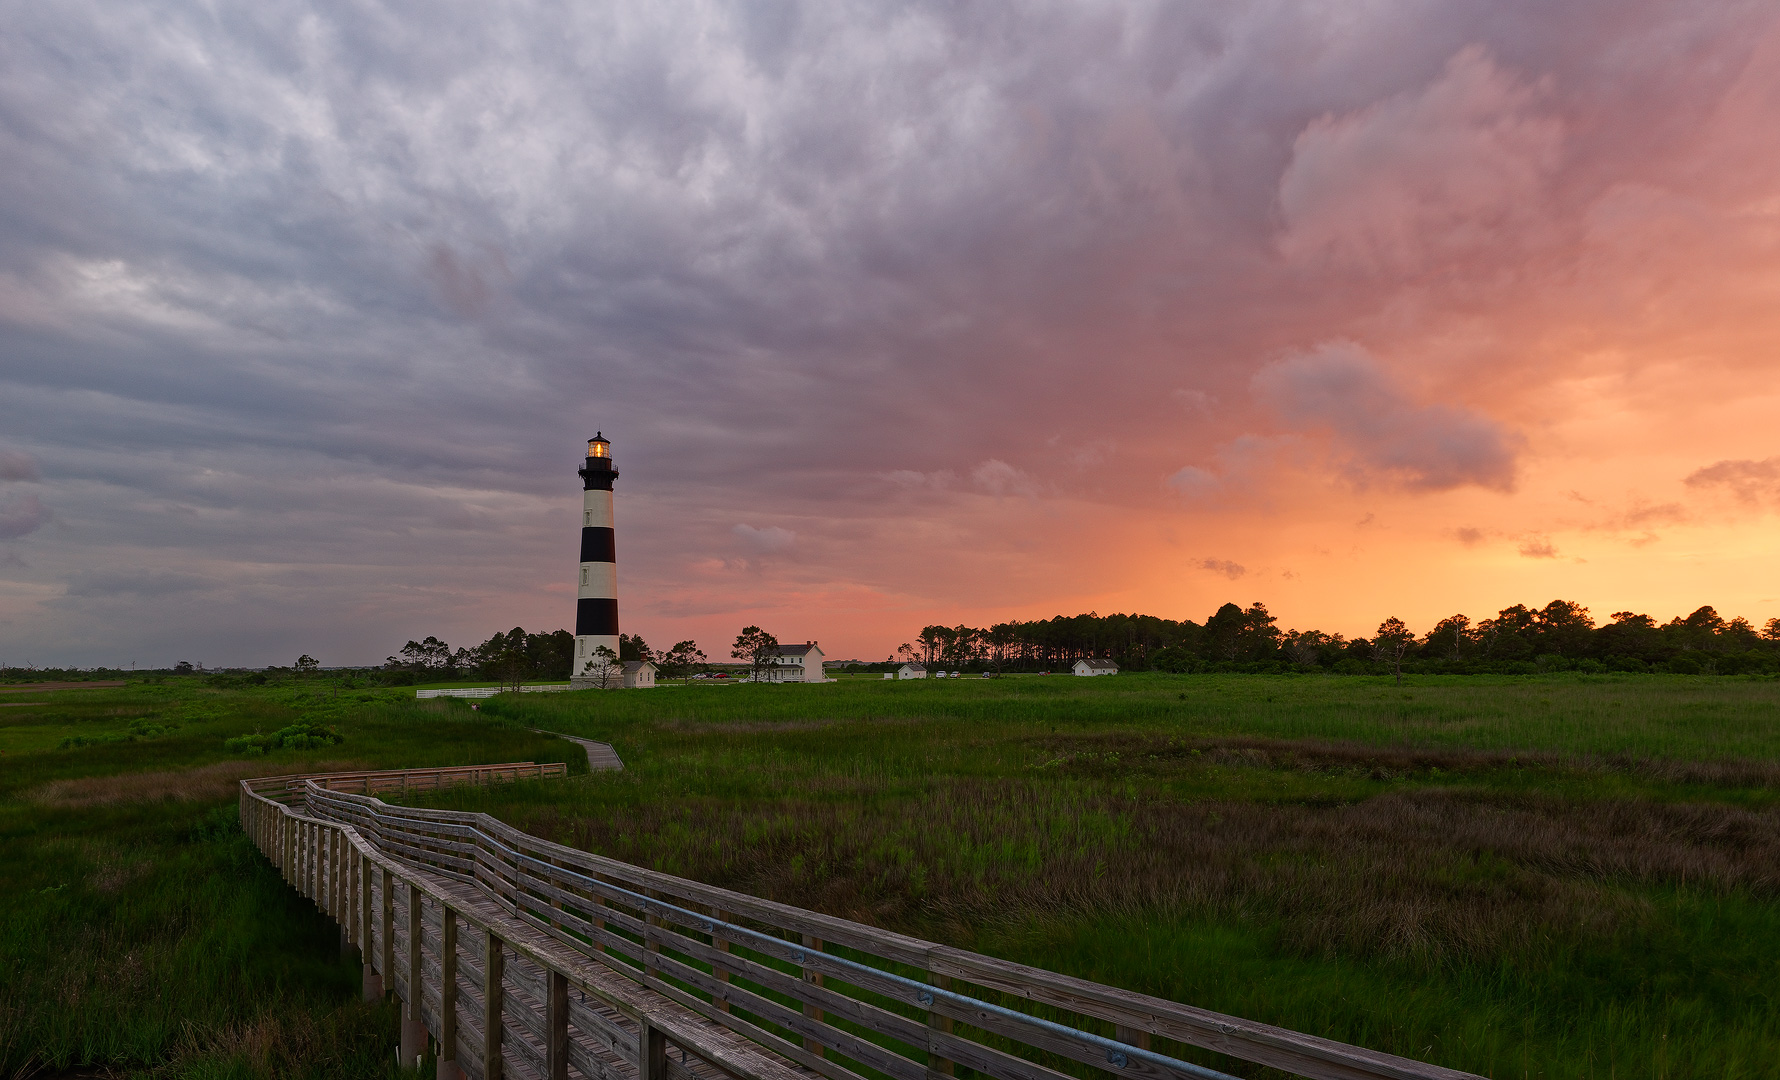 Bodie Island Lighthouse, North Carolina, sunset, OBX, Outer Banks, Hatteras Island, Cape Hatteras Seashores, scenic, marsh, dramatic sky, serene, outdoor, landscape, historic, atlantic, ocean, photo